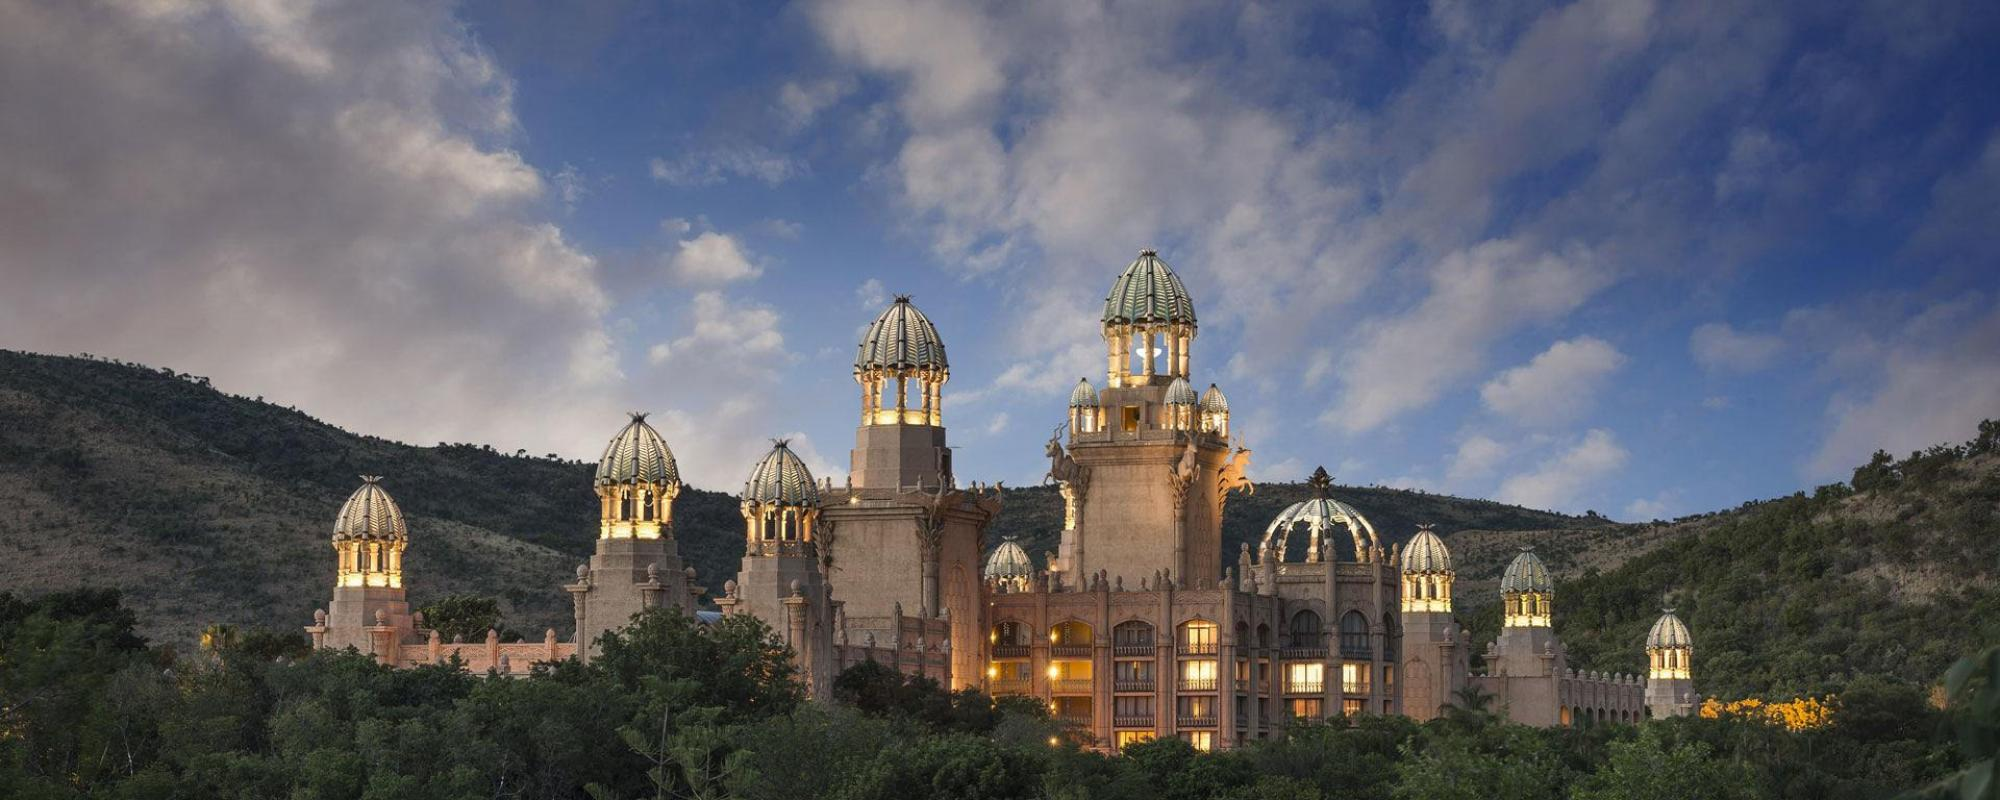 The The Palace of the Lost City's picturesque hotel in spectacular South Africa.